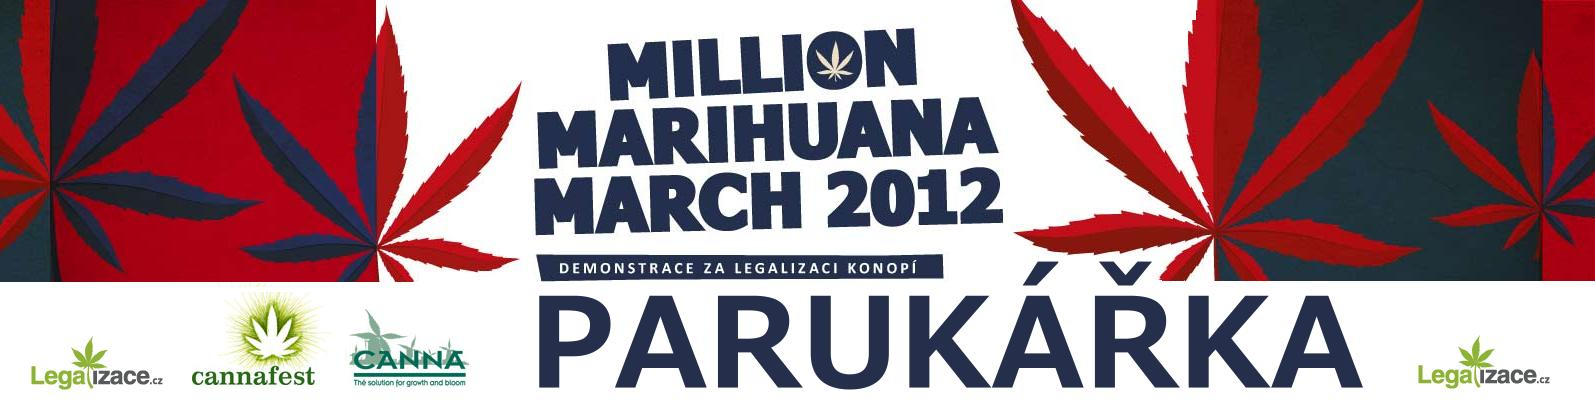 Million Marihuana March  Paruk��ka 2012